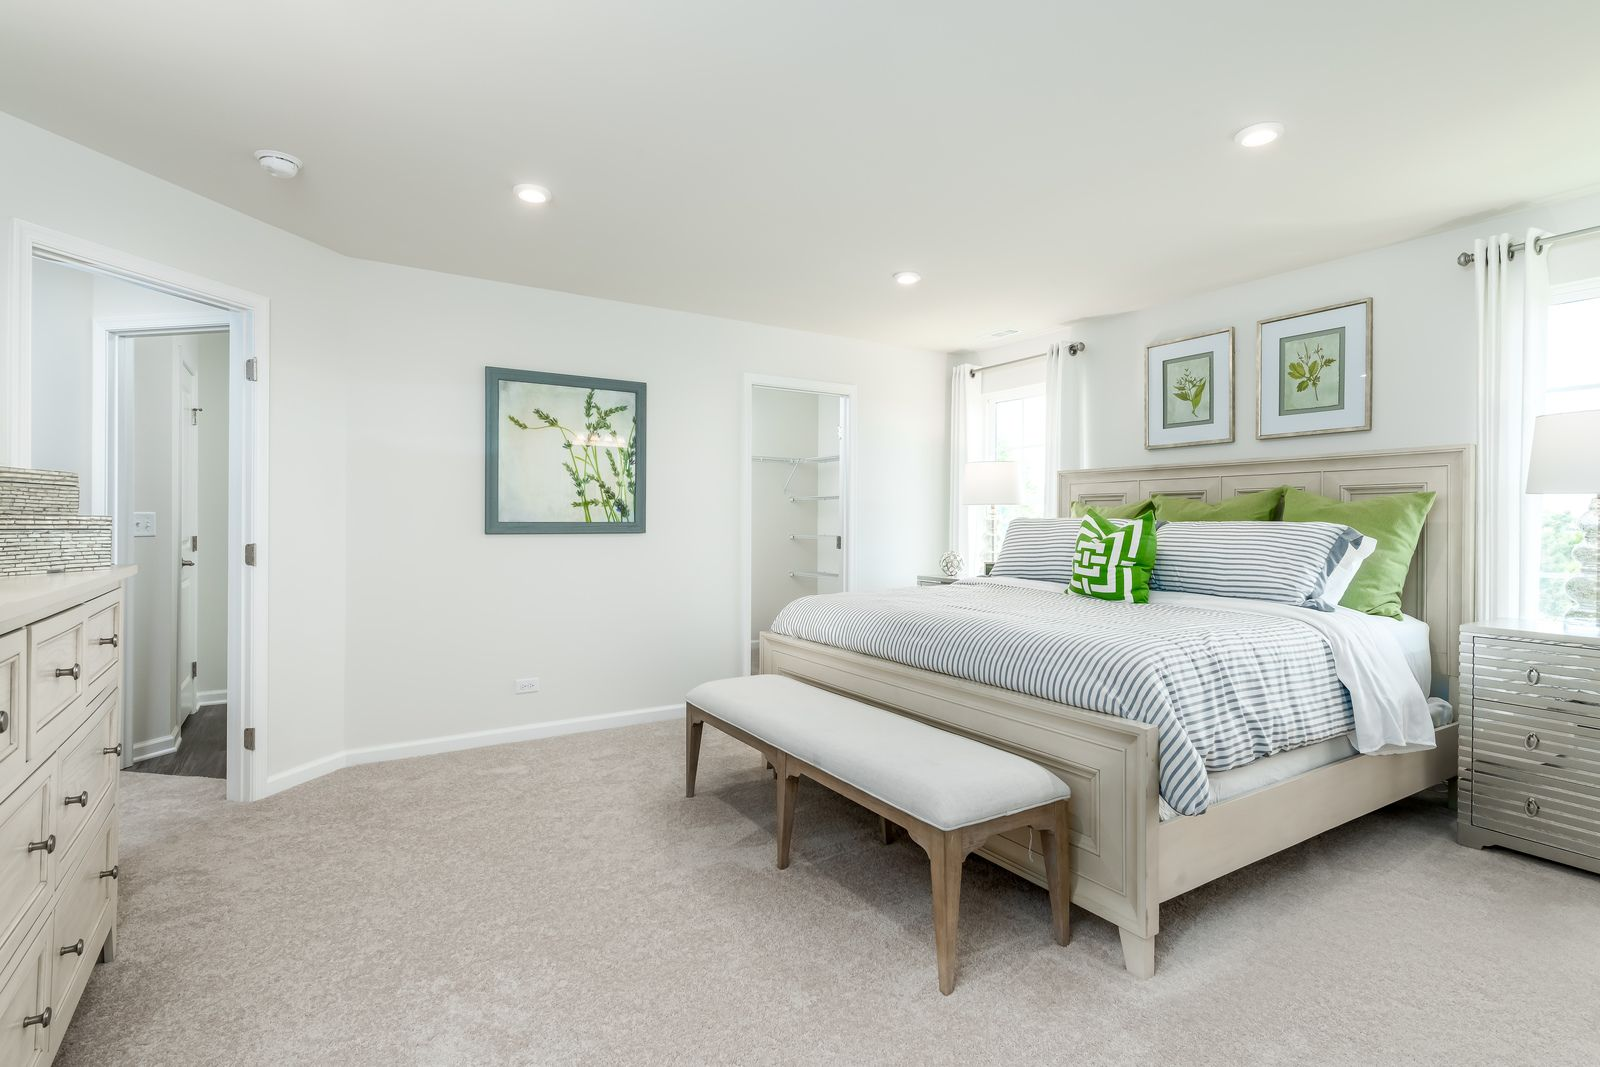 Bedroom featured in the Rosecliff By Ryan Homes in Chicago, IL